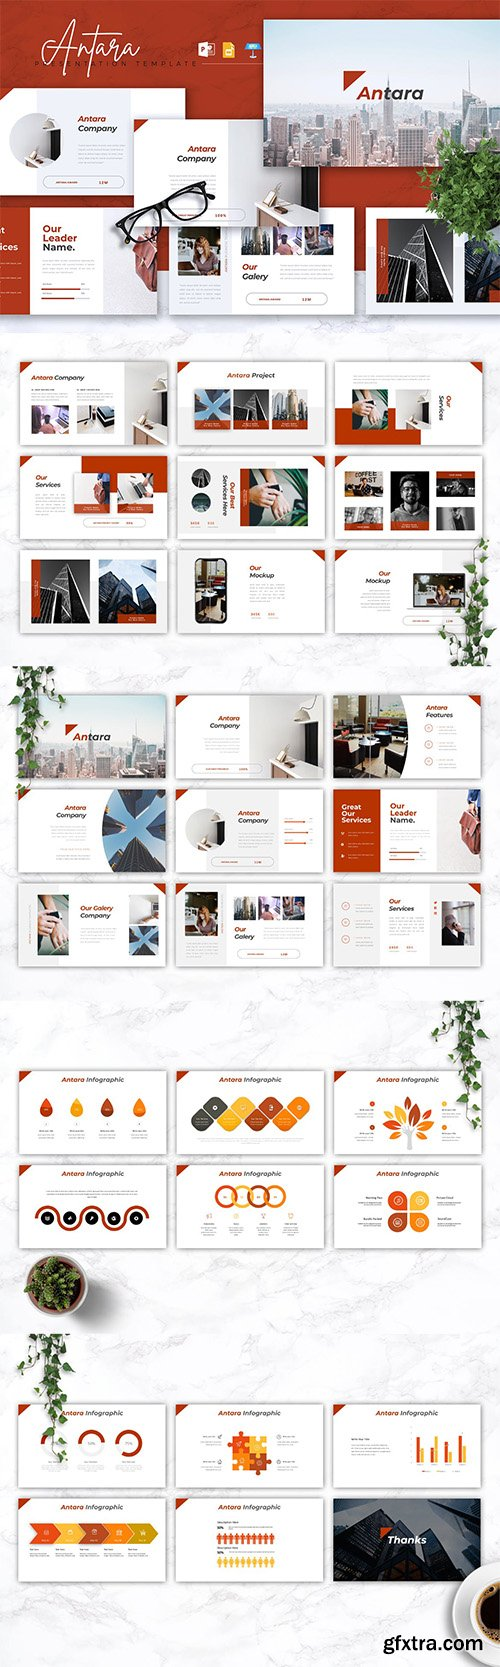 ANTARA Company Profile Powerpoint/Google Slide/Key